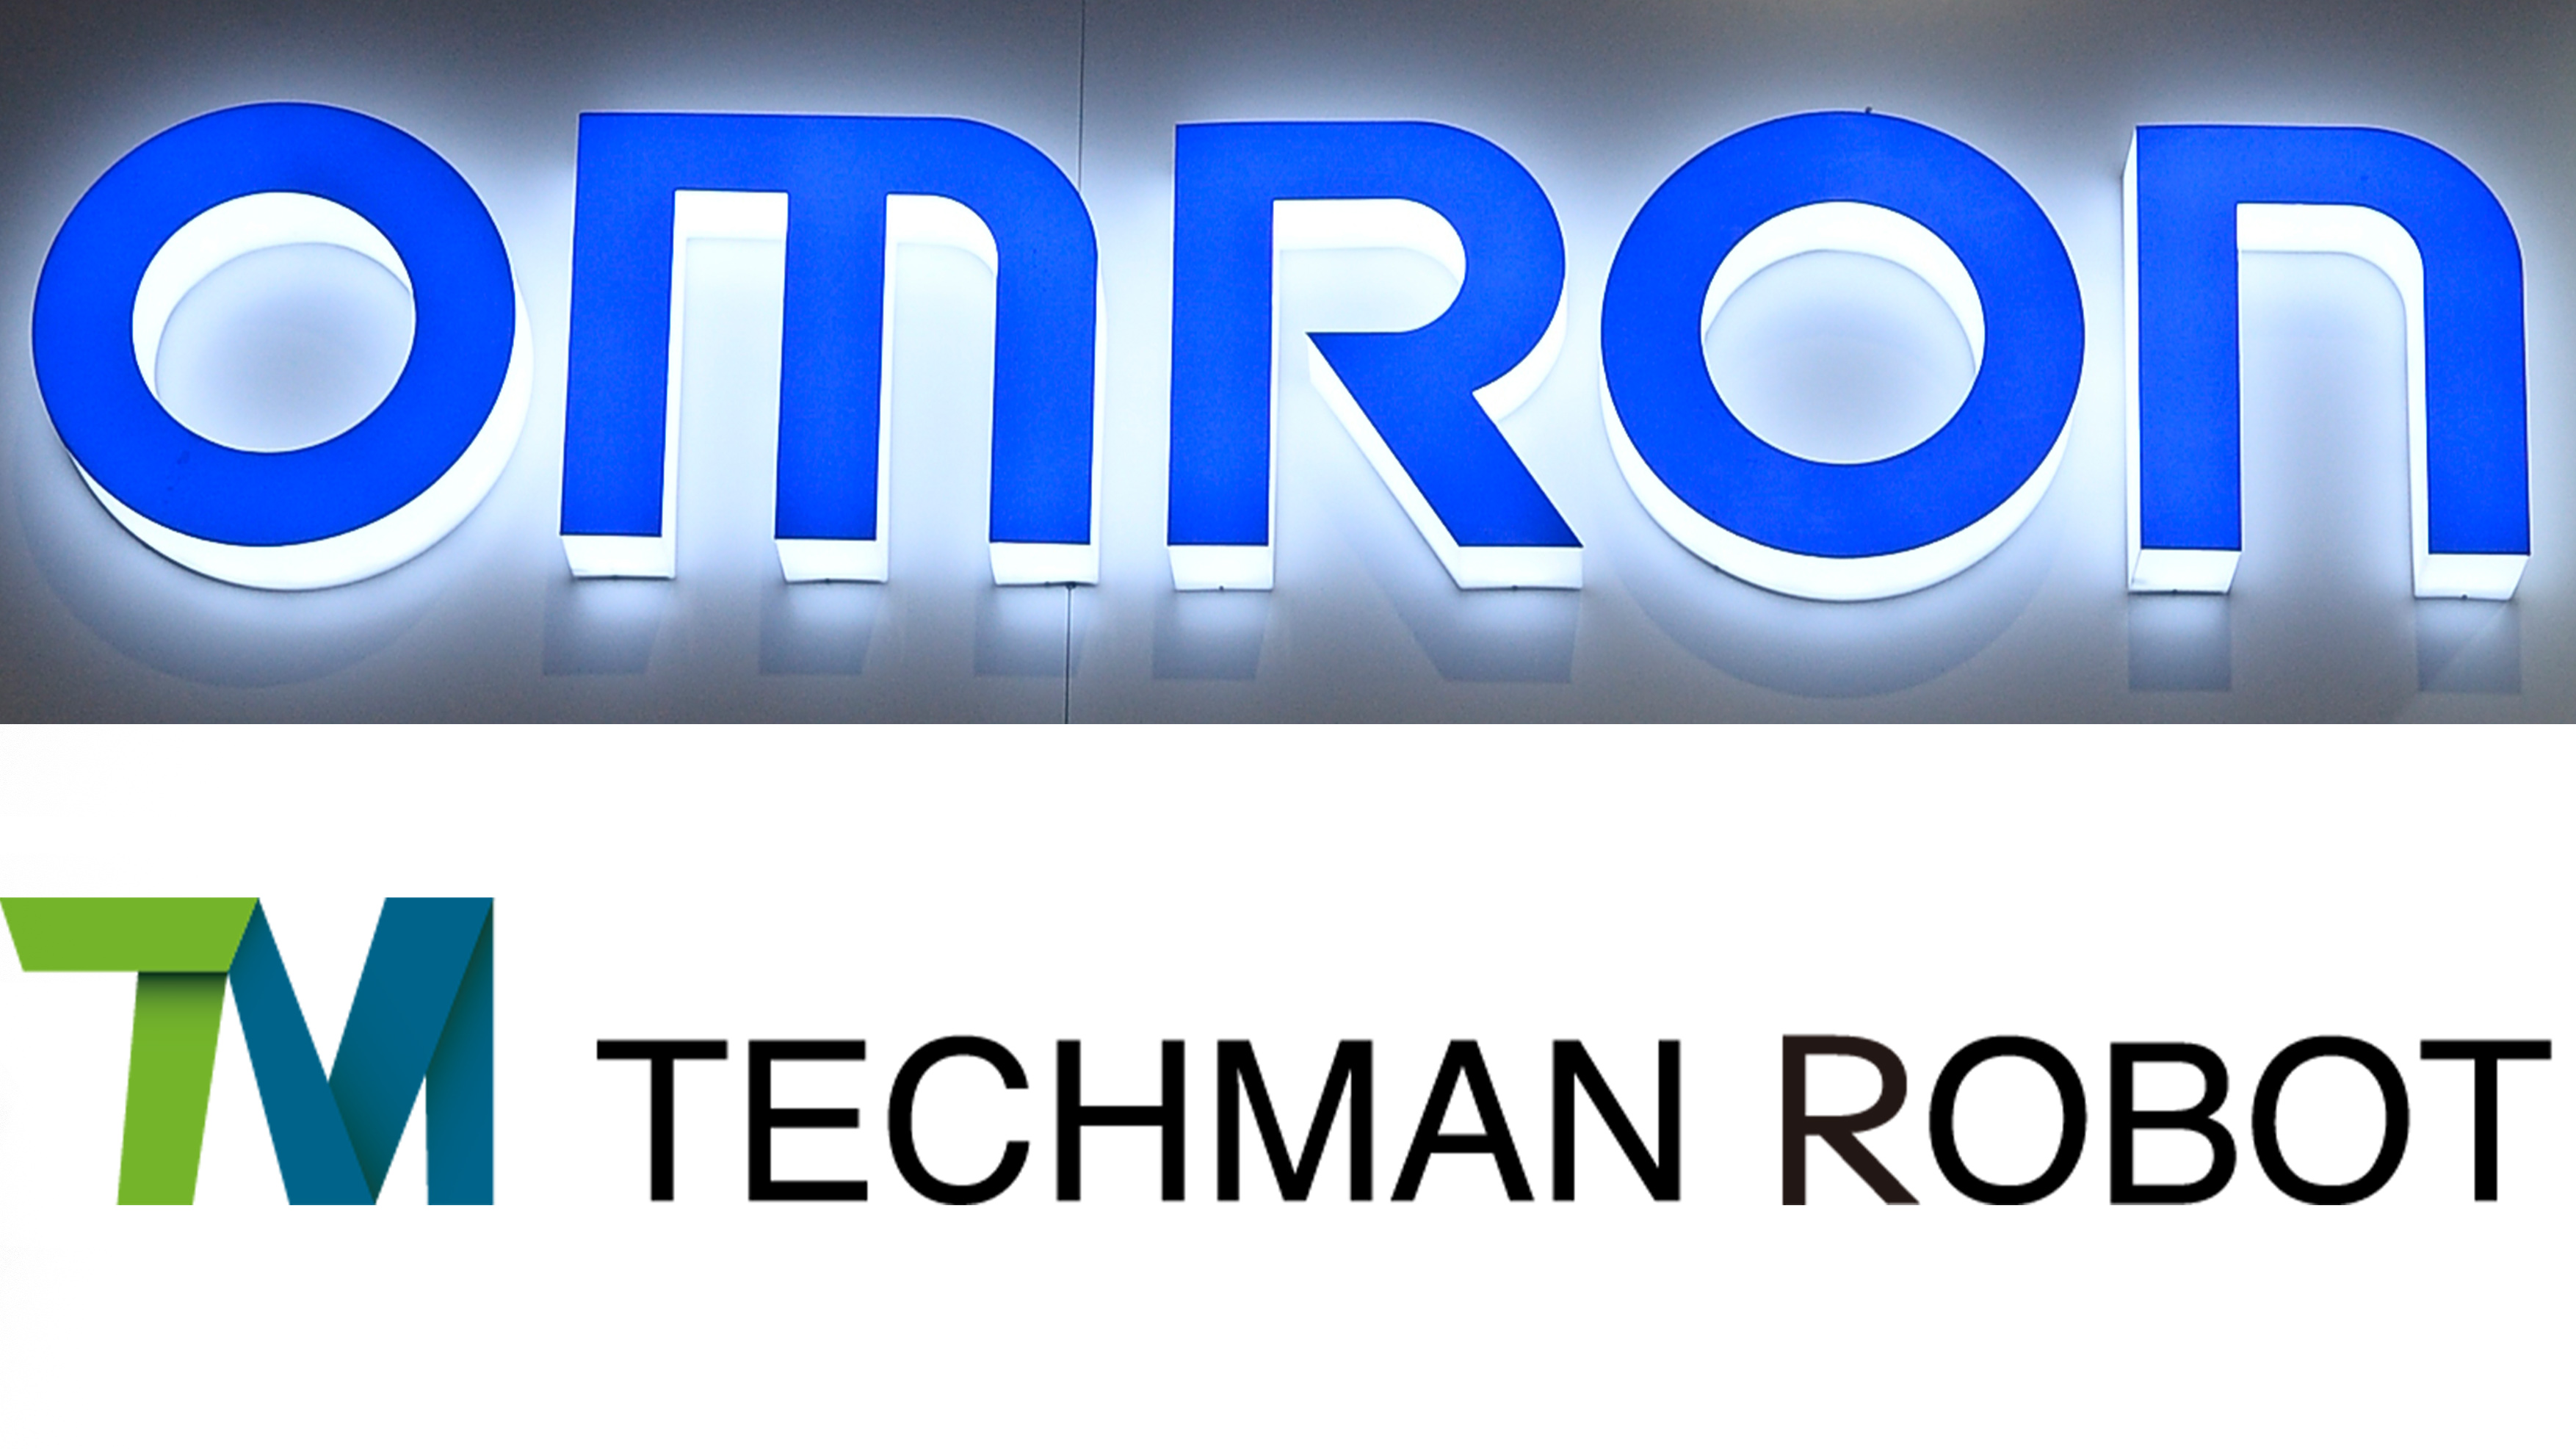 nikkei.com - Staff Writer - Omron to invest in Techman Robot, a unit of Taiwan's Quanta